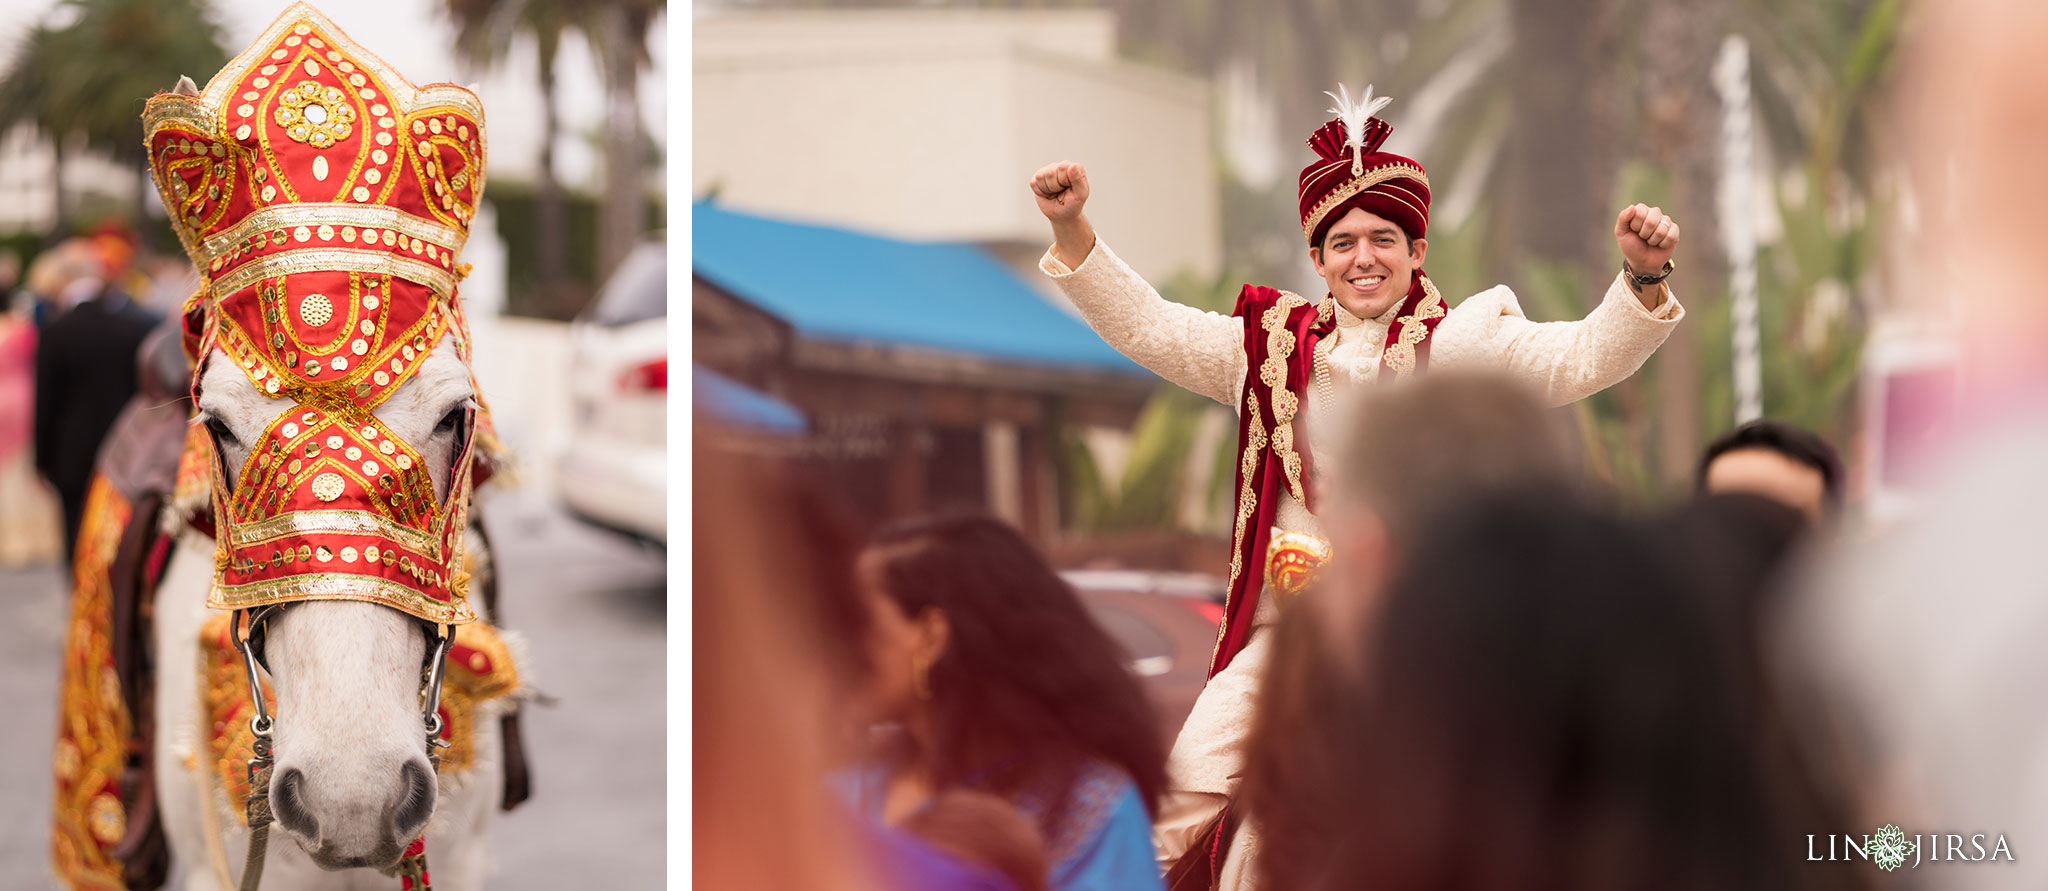 30 newport beach marriott hotel indian wedding baraat photography